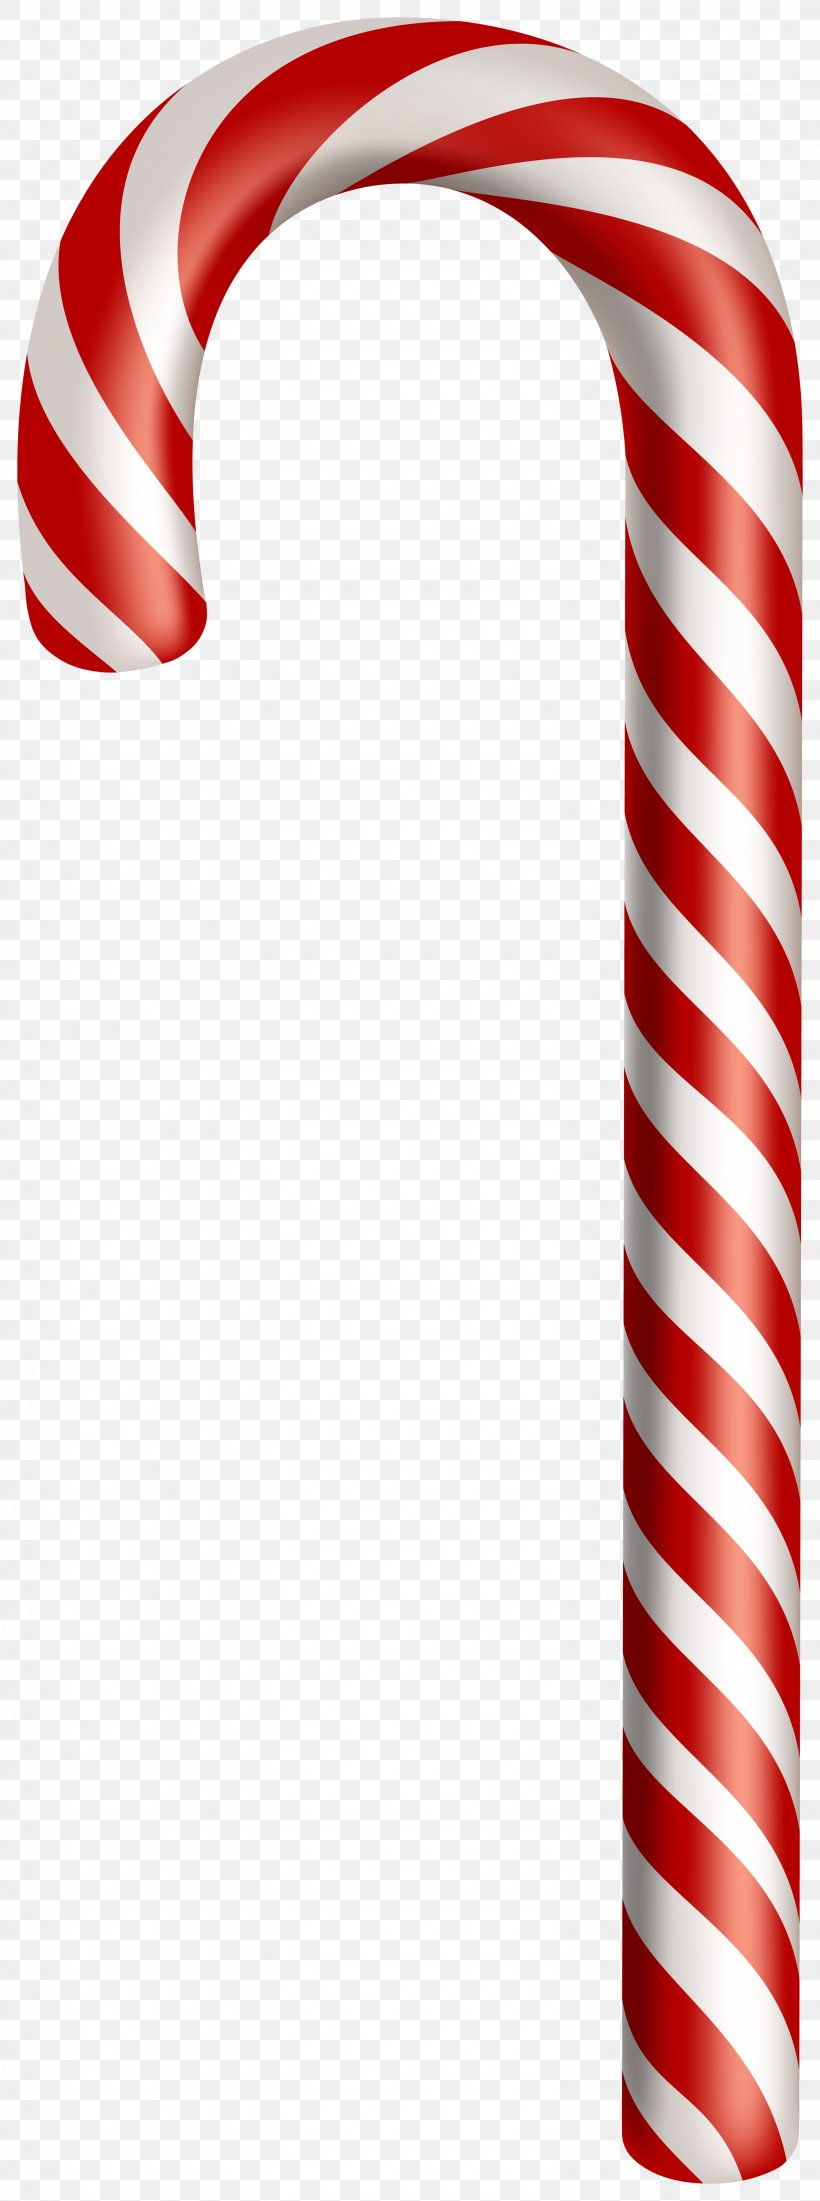 Candy Cane Clip Art Christmas Image, PNG, 2980x8000px, Candy Cane, Art Museum, Candy, Christmas Day, Clip Art Christmas Download Free